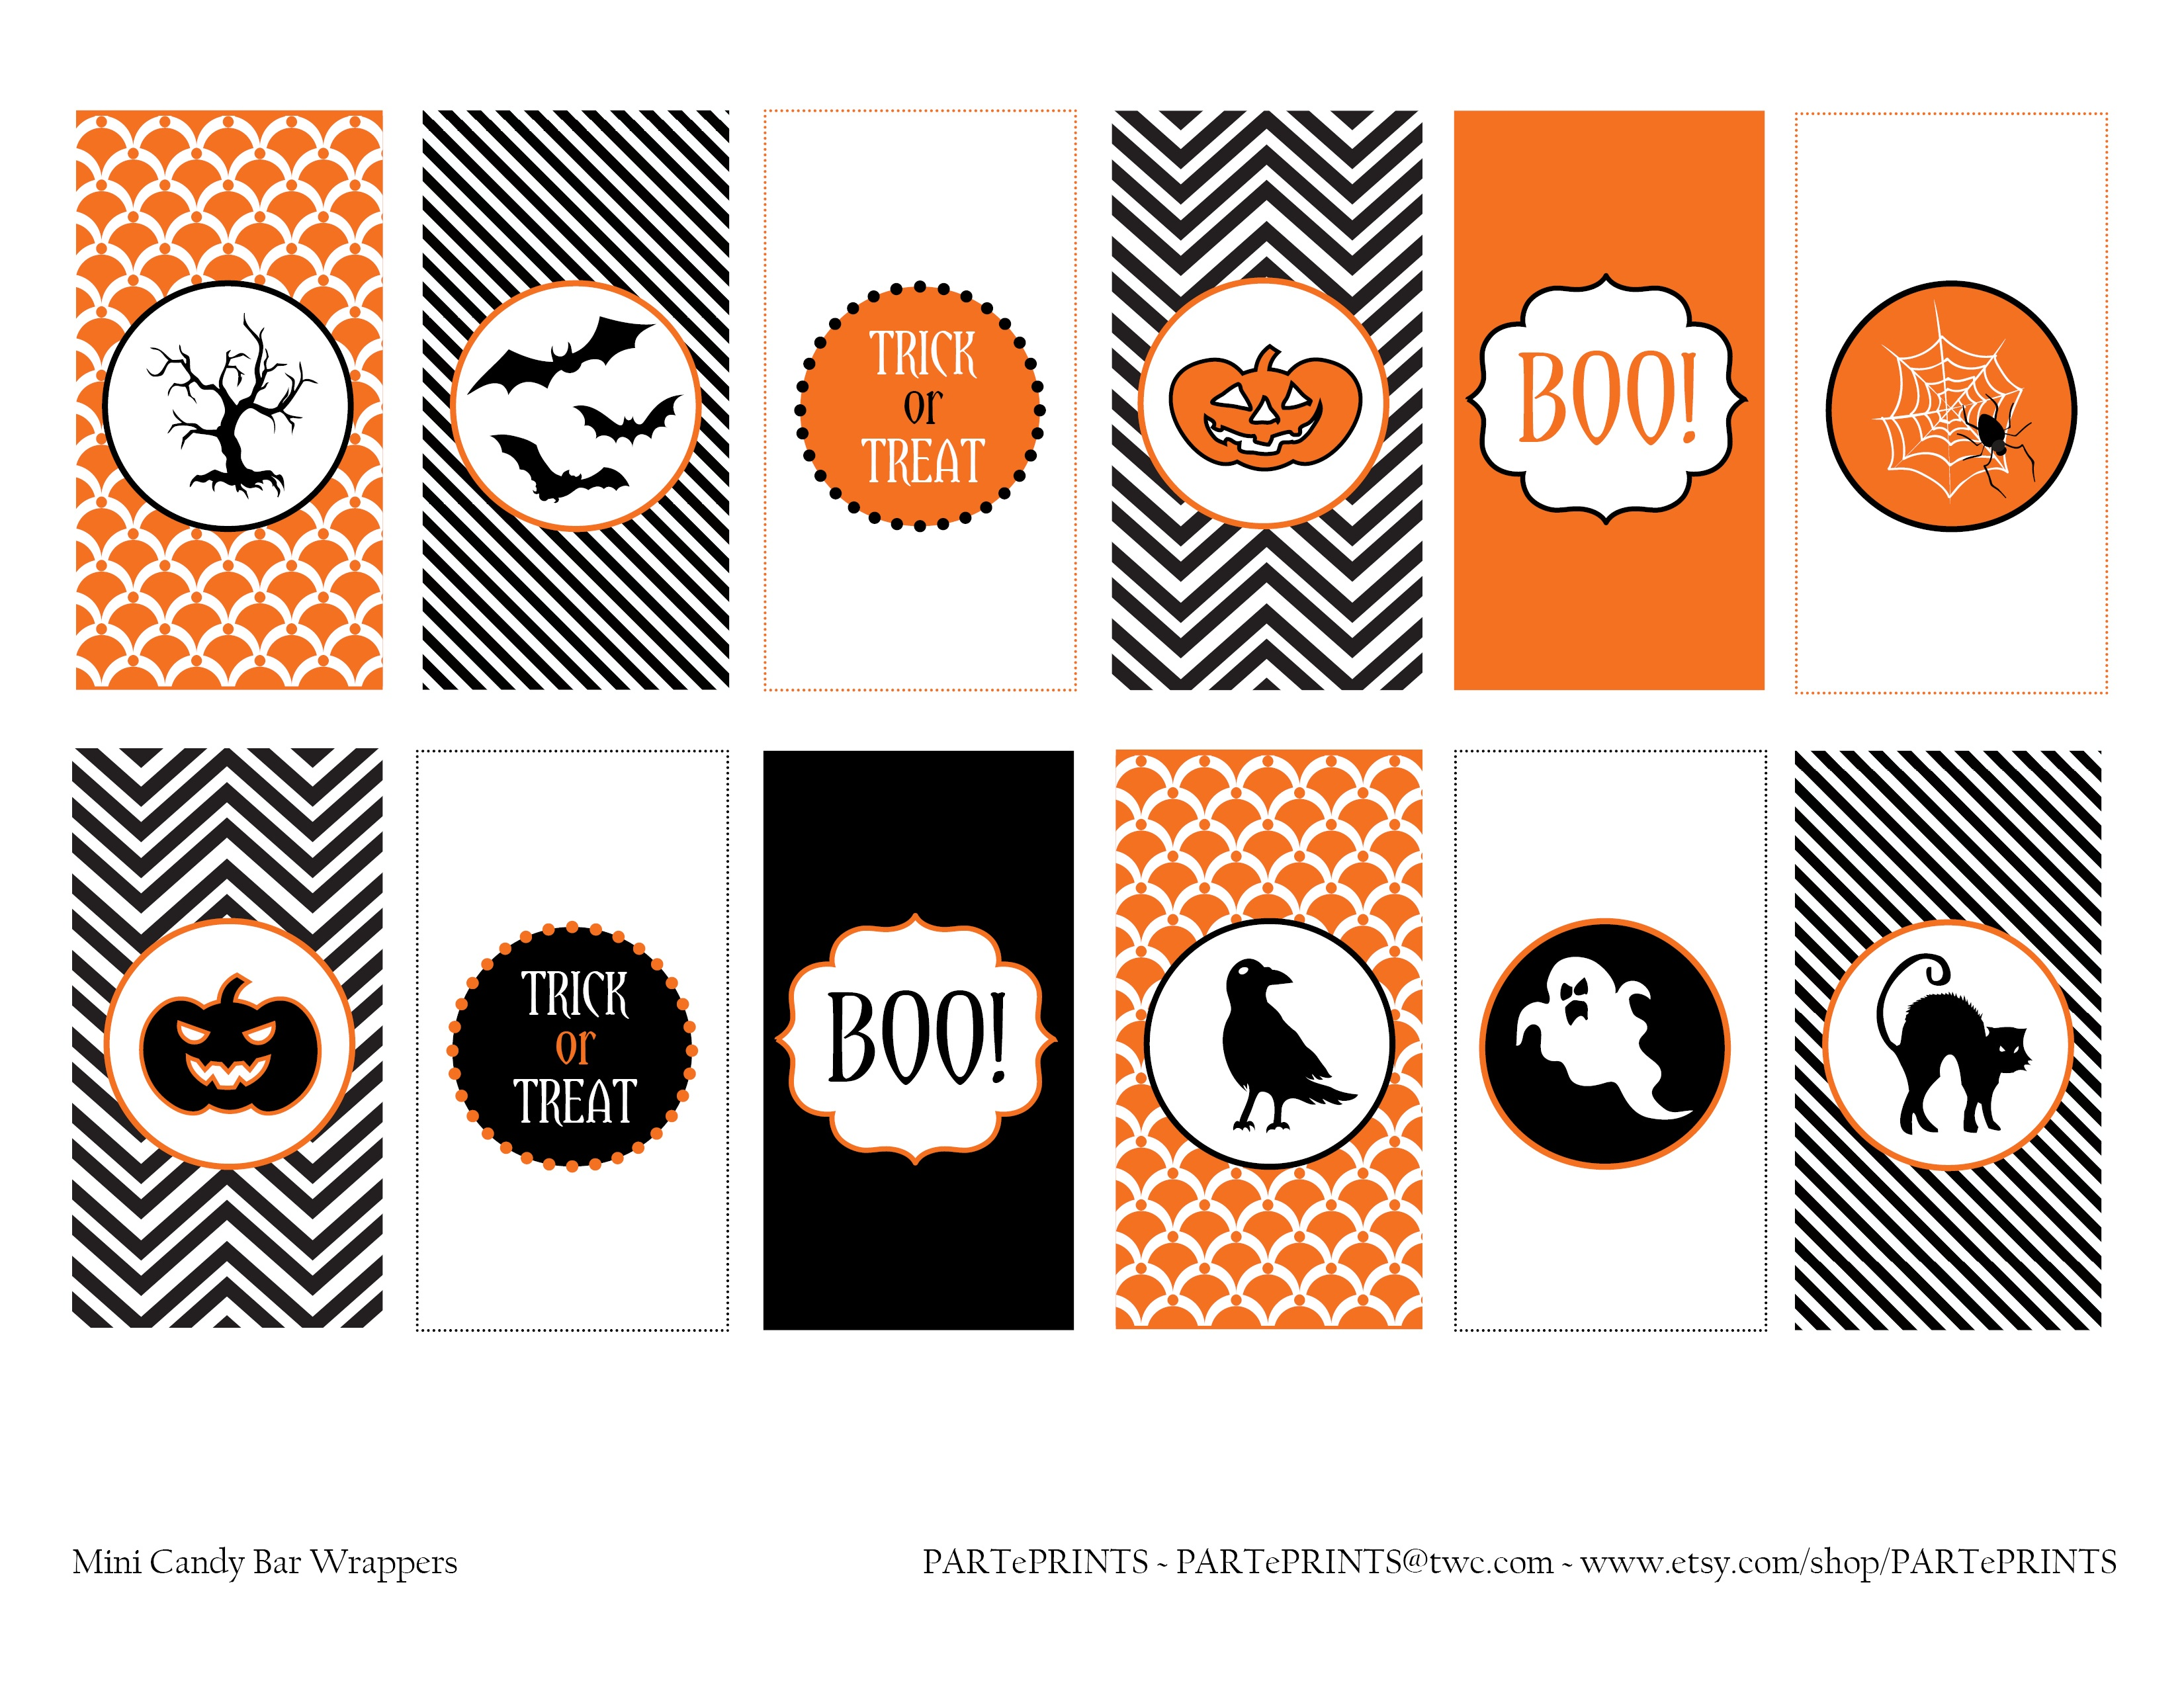 Free Halloween Printables From Parteprints | Catch My Party - Free Halloween Printables